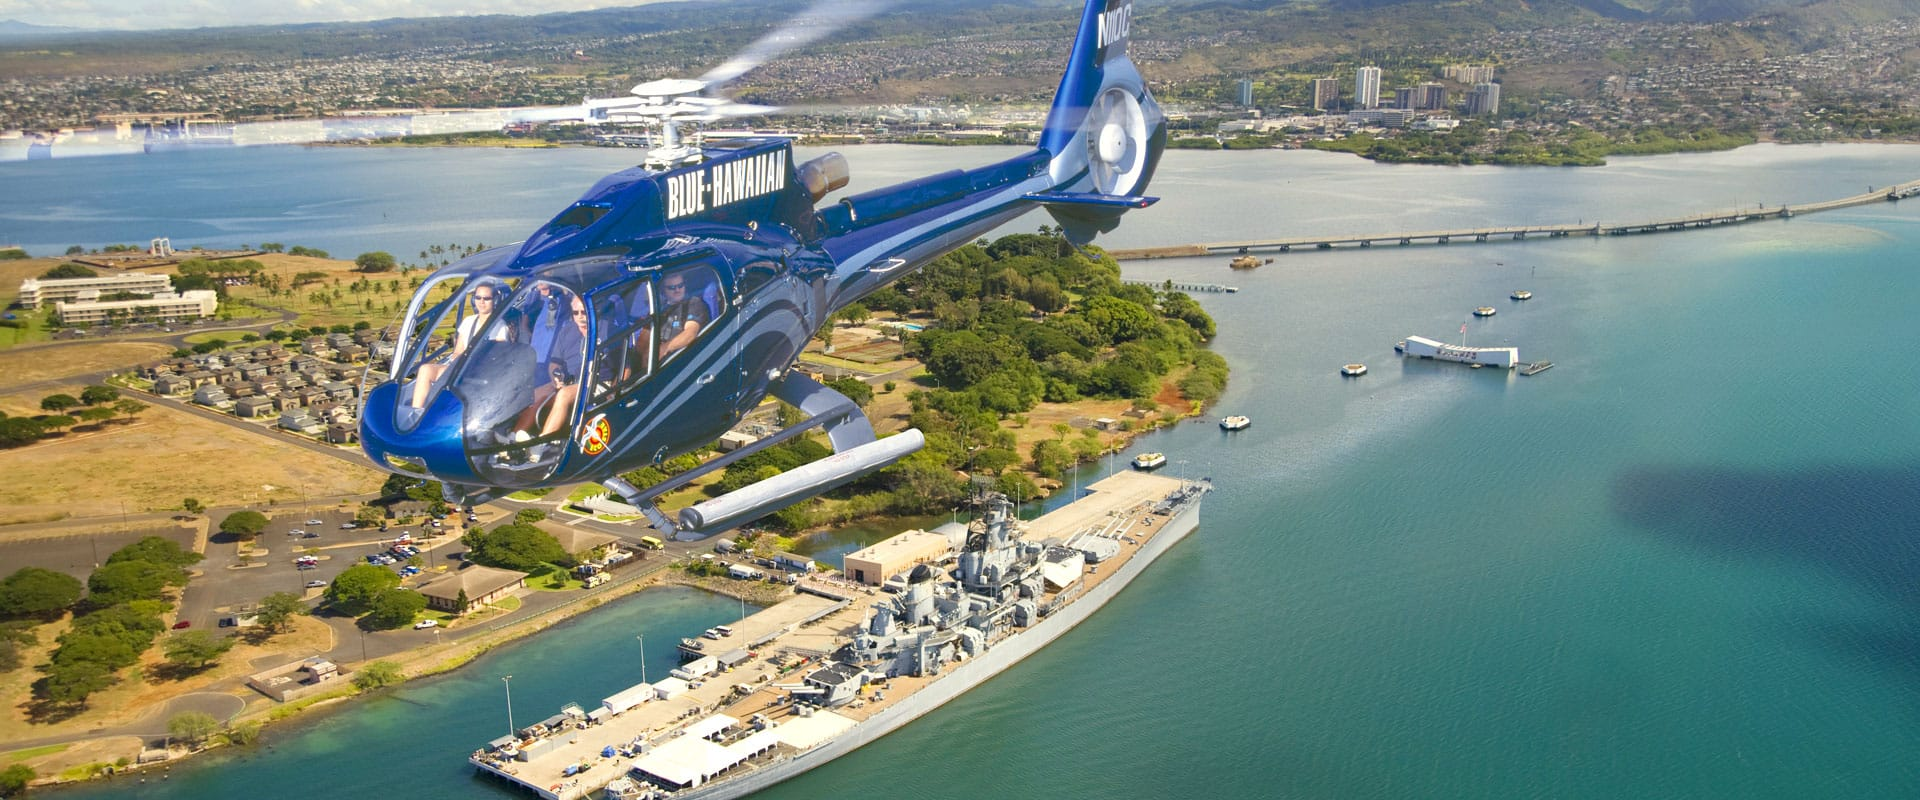 Helicopter rides over Historic Pearl Harbor